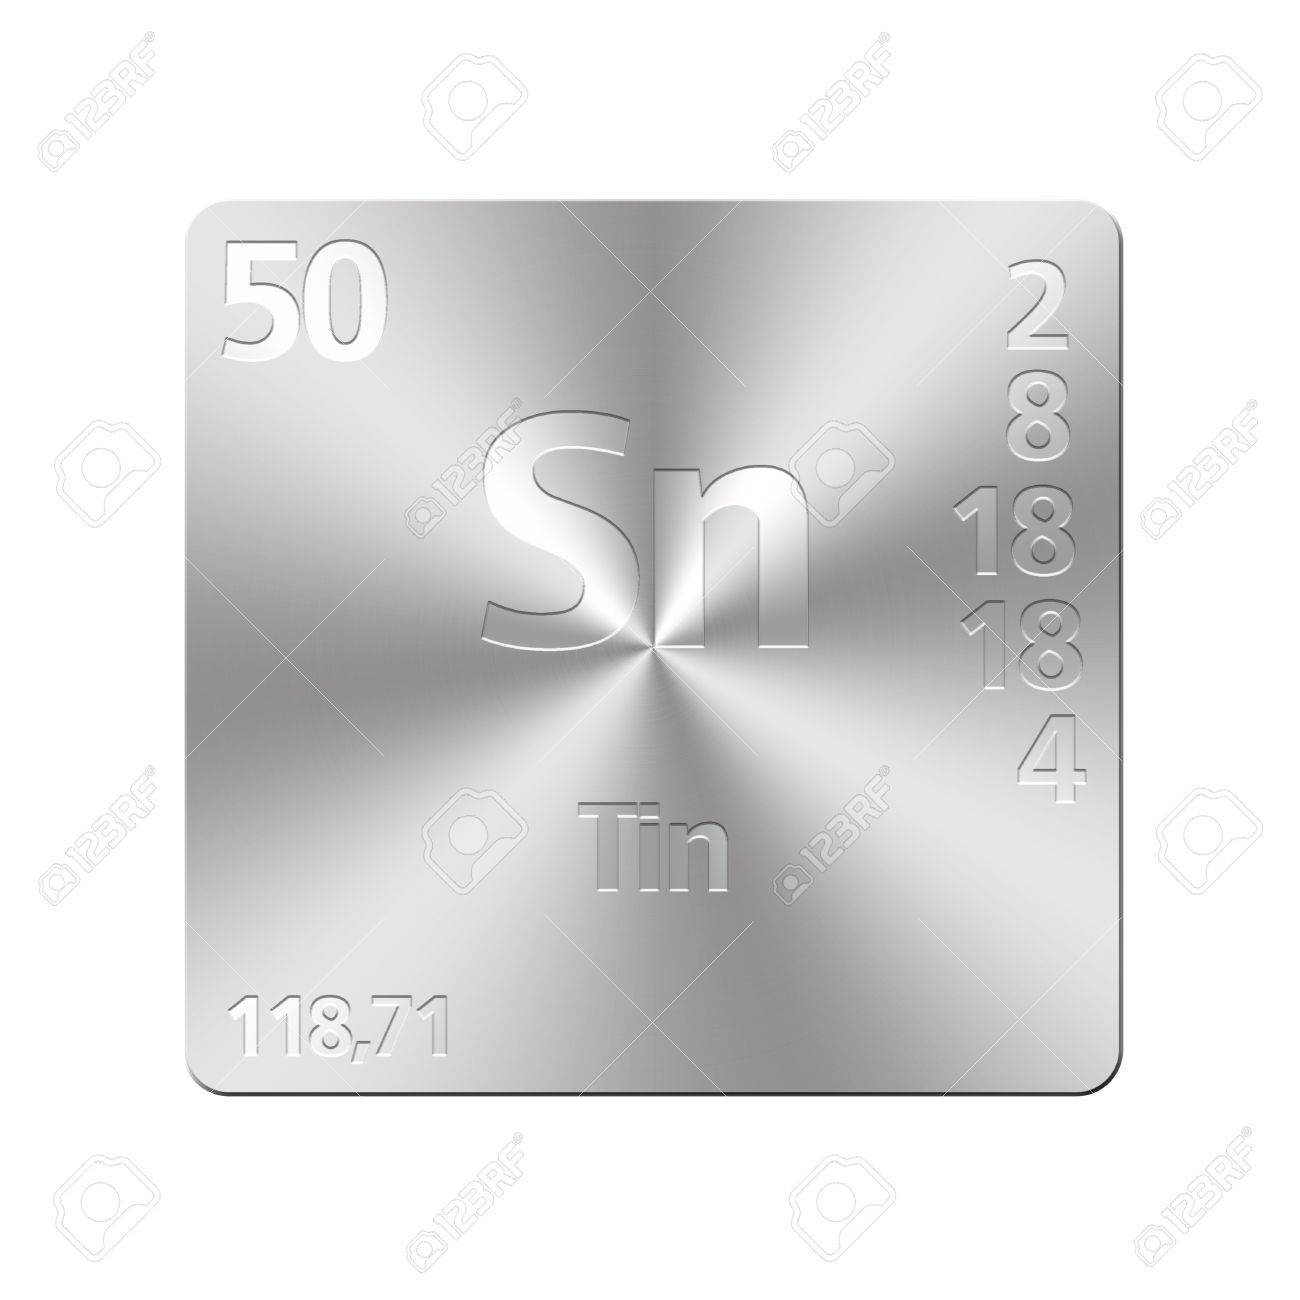 Tin on periodic table choice image periodic table images periodic table tin image collections periodic table images tin symbol periodic table choice image periodic table gamestrikefo Gallery